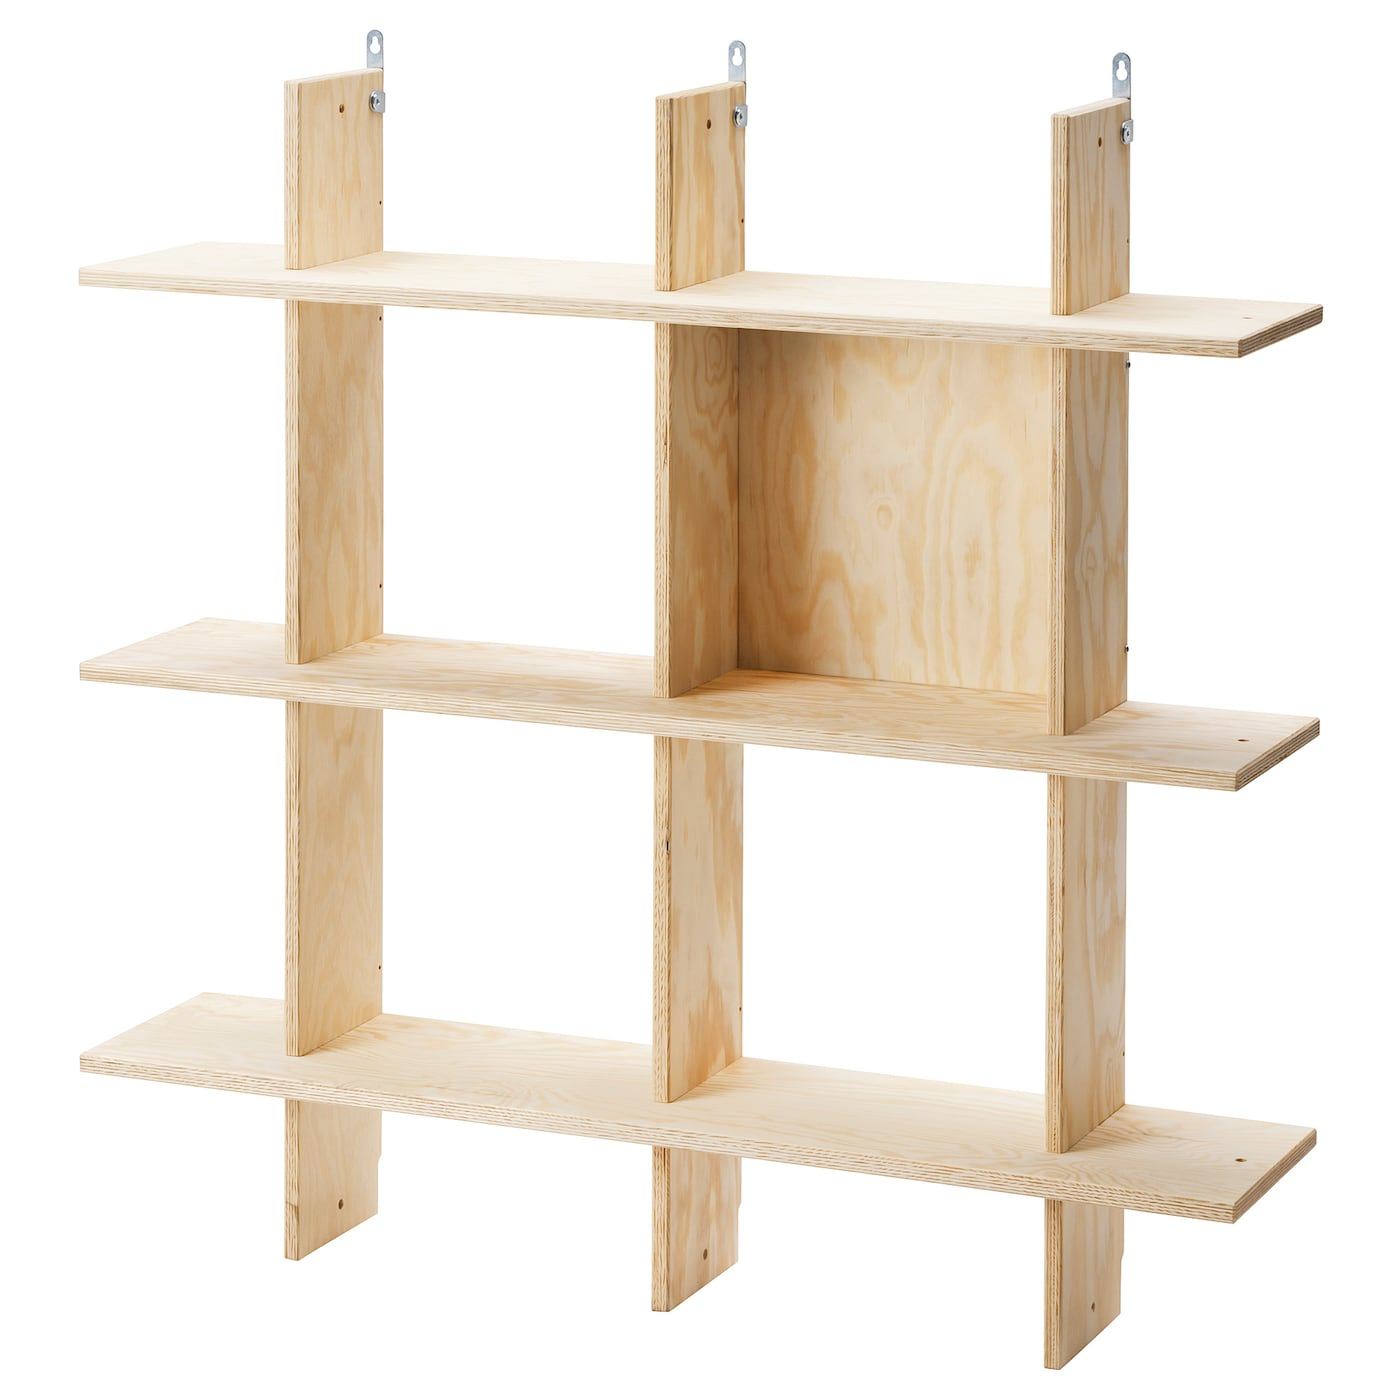 IKEA INDUSTRIELL shelving unit